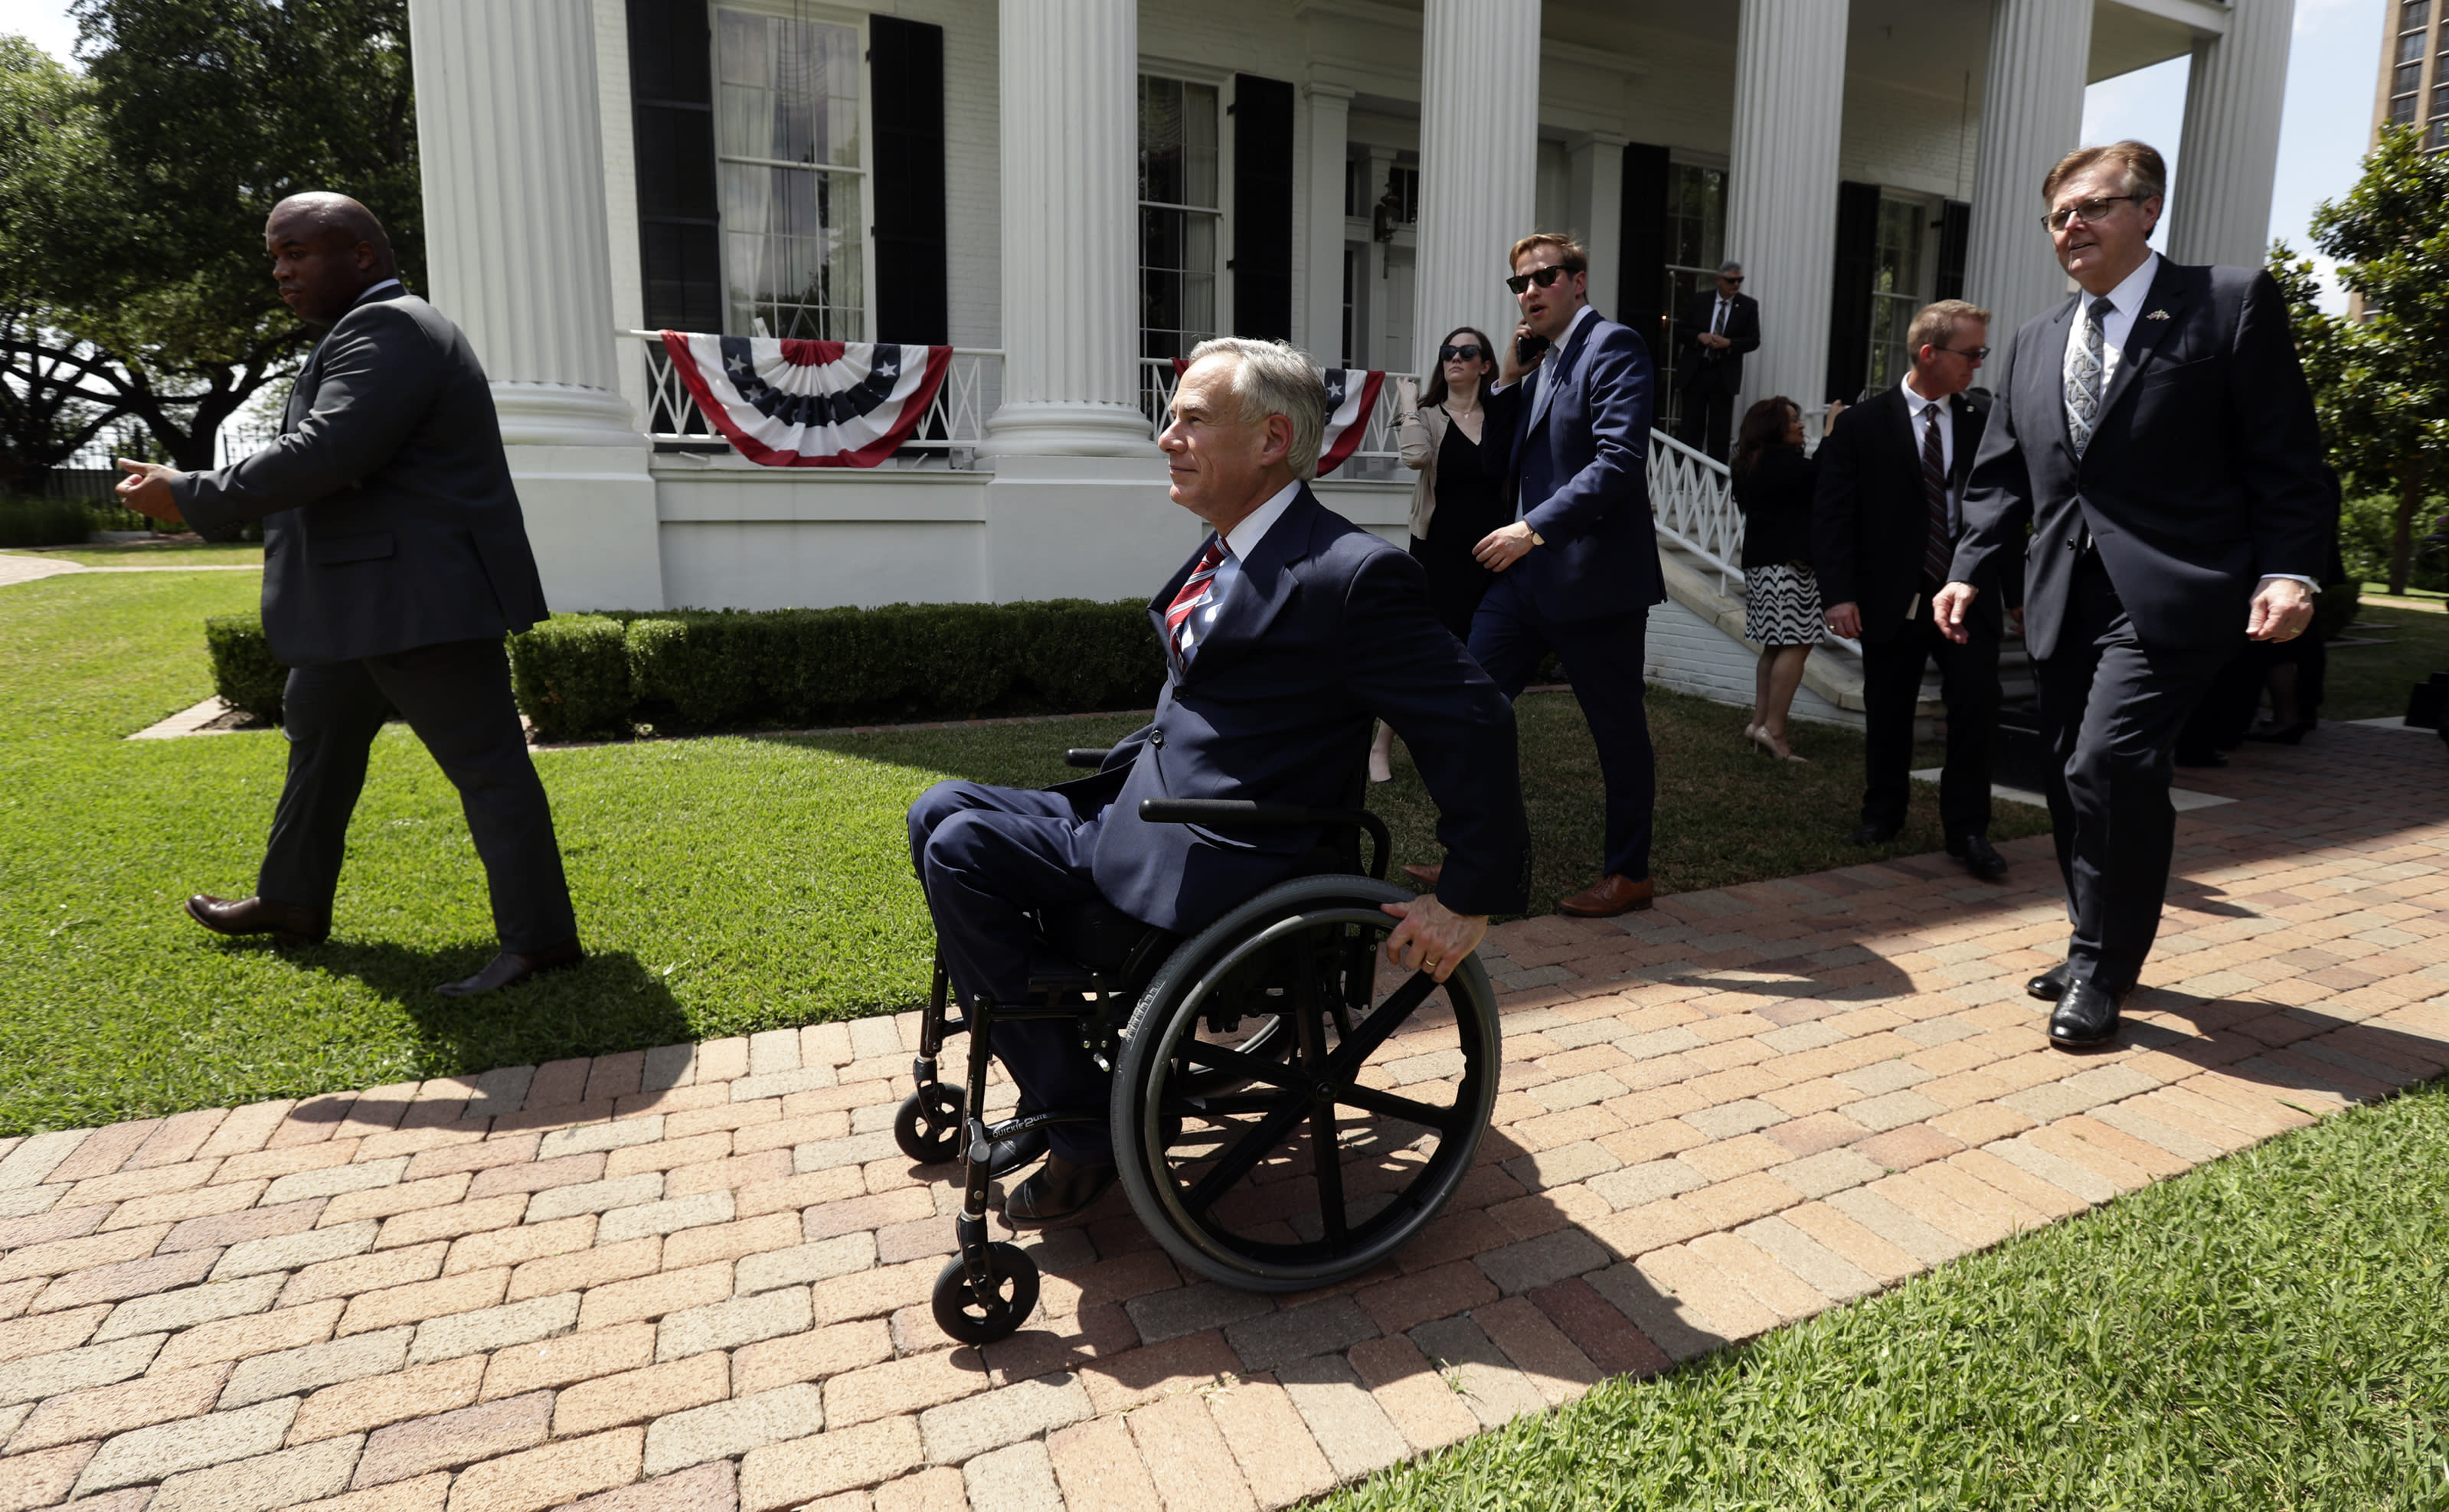 Governor Greg Abbott is followed by Lt. Governor Dan Patrick after a joint press conference to announce changes to teacher pay and school finance at the Texas Governor's Mansion in Austin, Texas, Thursday, May 23, 2019, in Austin. (AP Photo/Eric Gay)